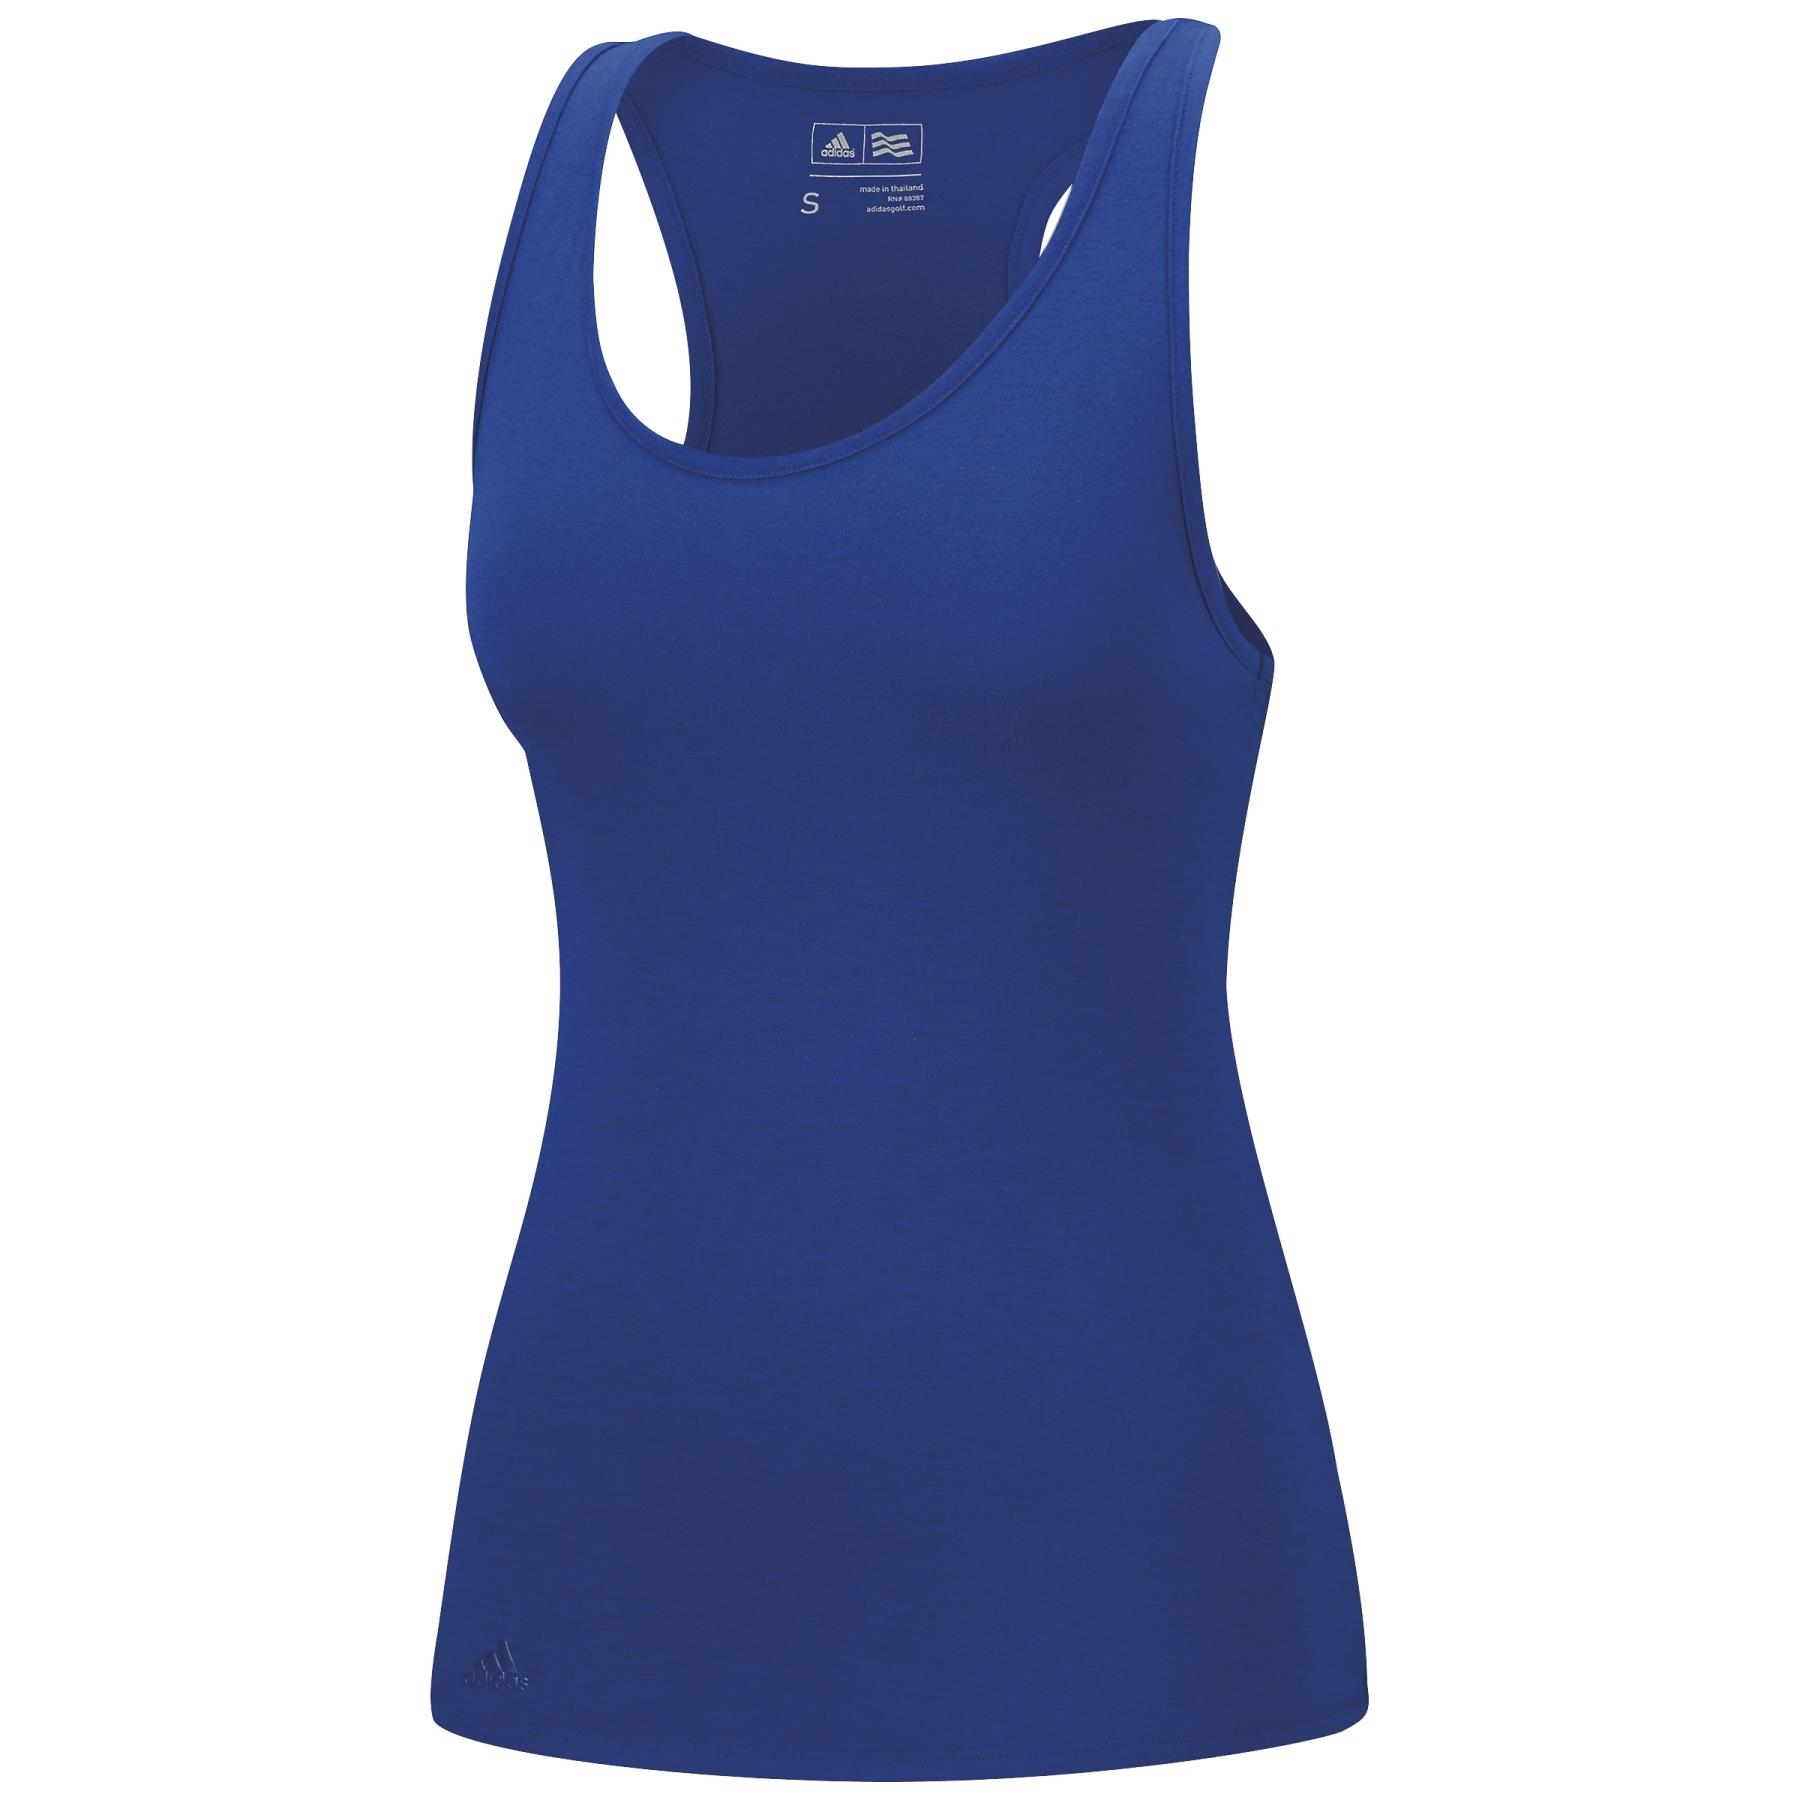 Amazing Adidas Womens Golf Apparel Adidas Originals Top